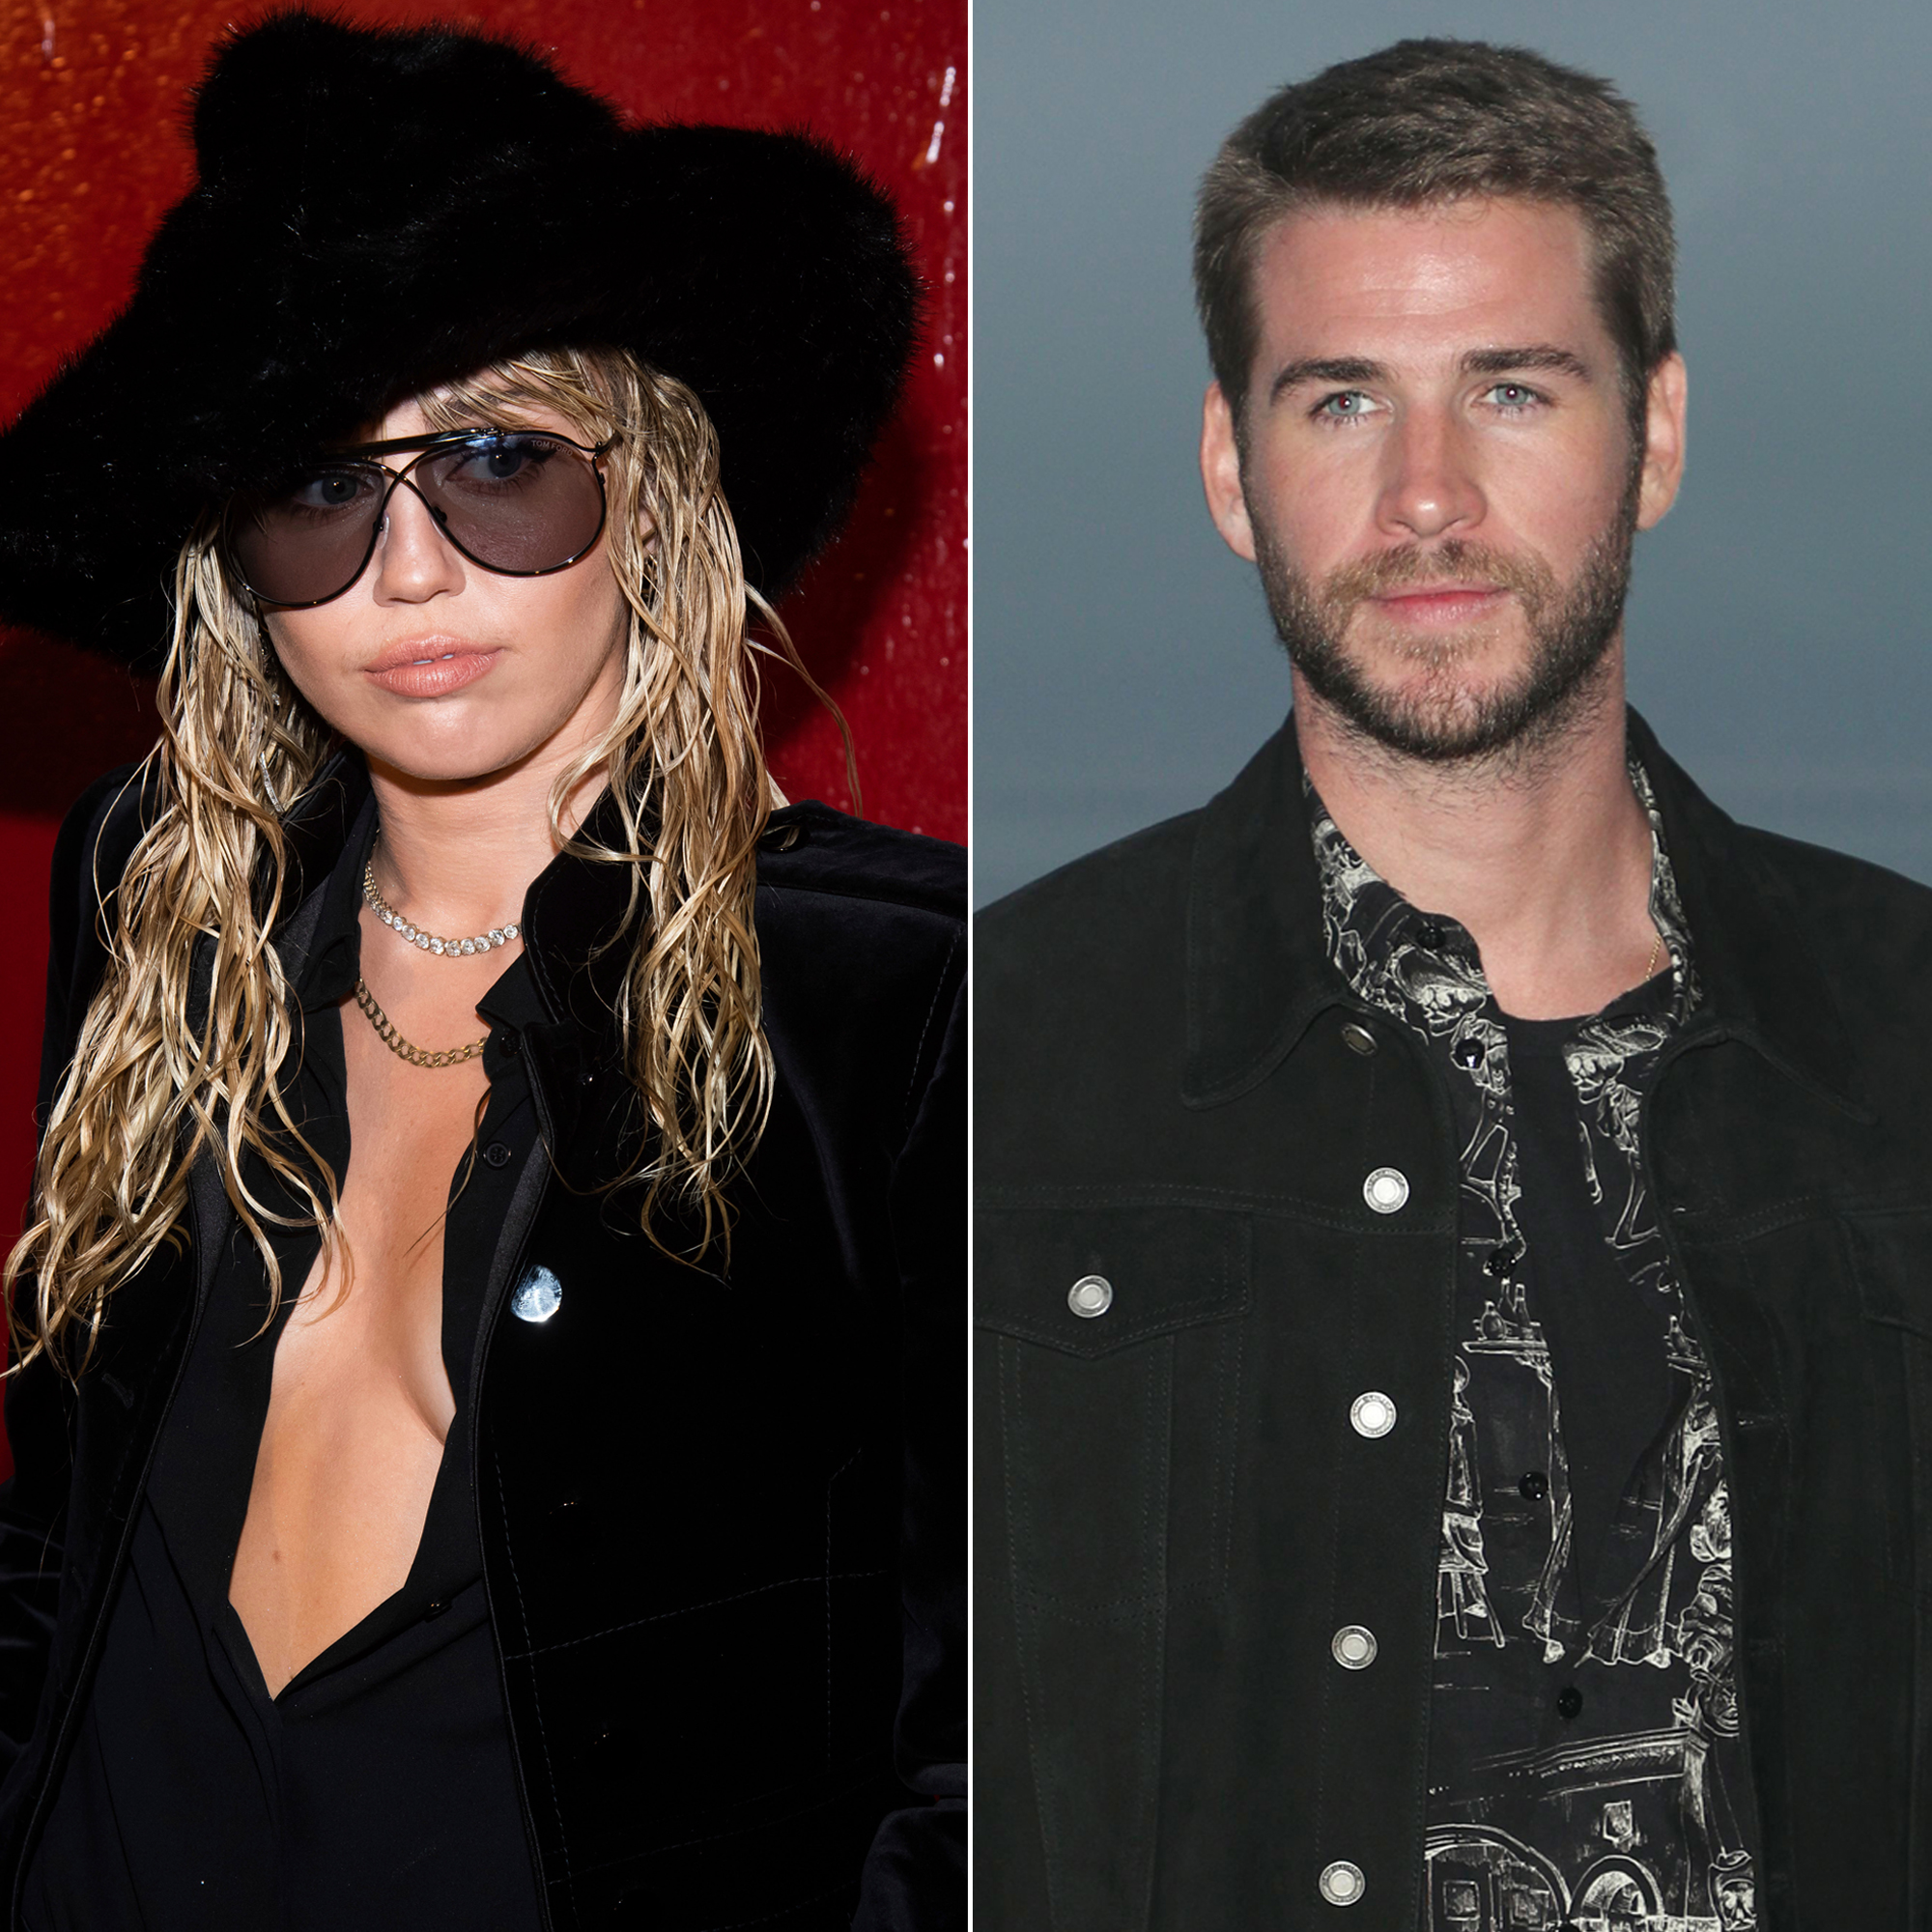 Miley Cyrus Posts About 'Self Love and Care' on What Would've Been 1st Wedding Anniversary With Liam Hemsworth